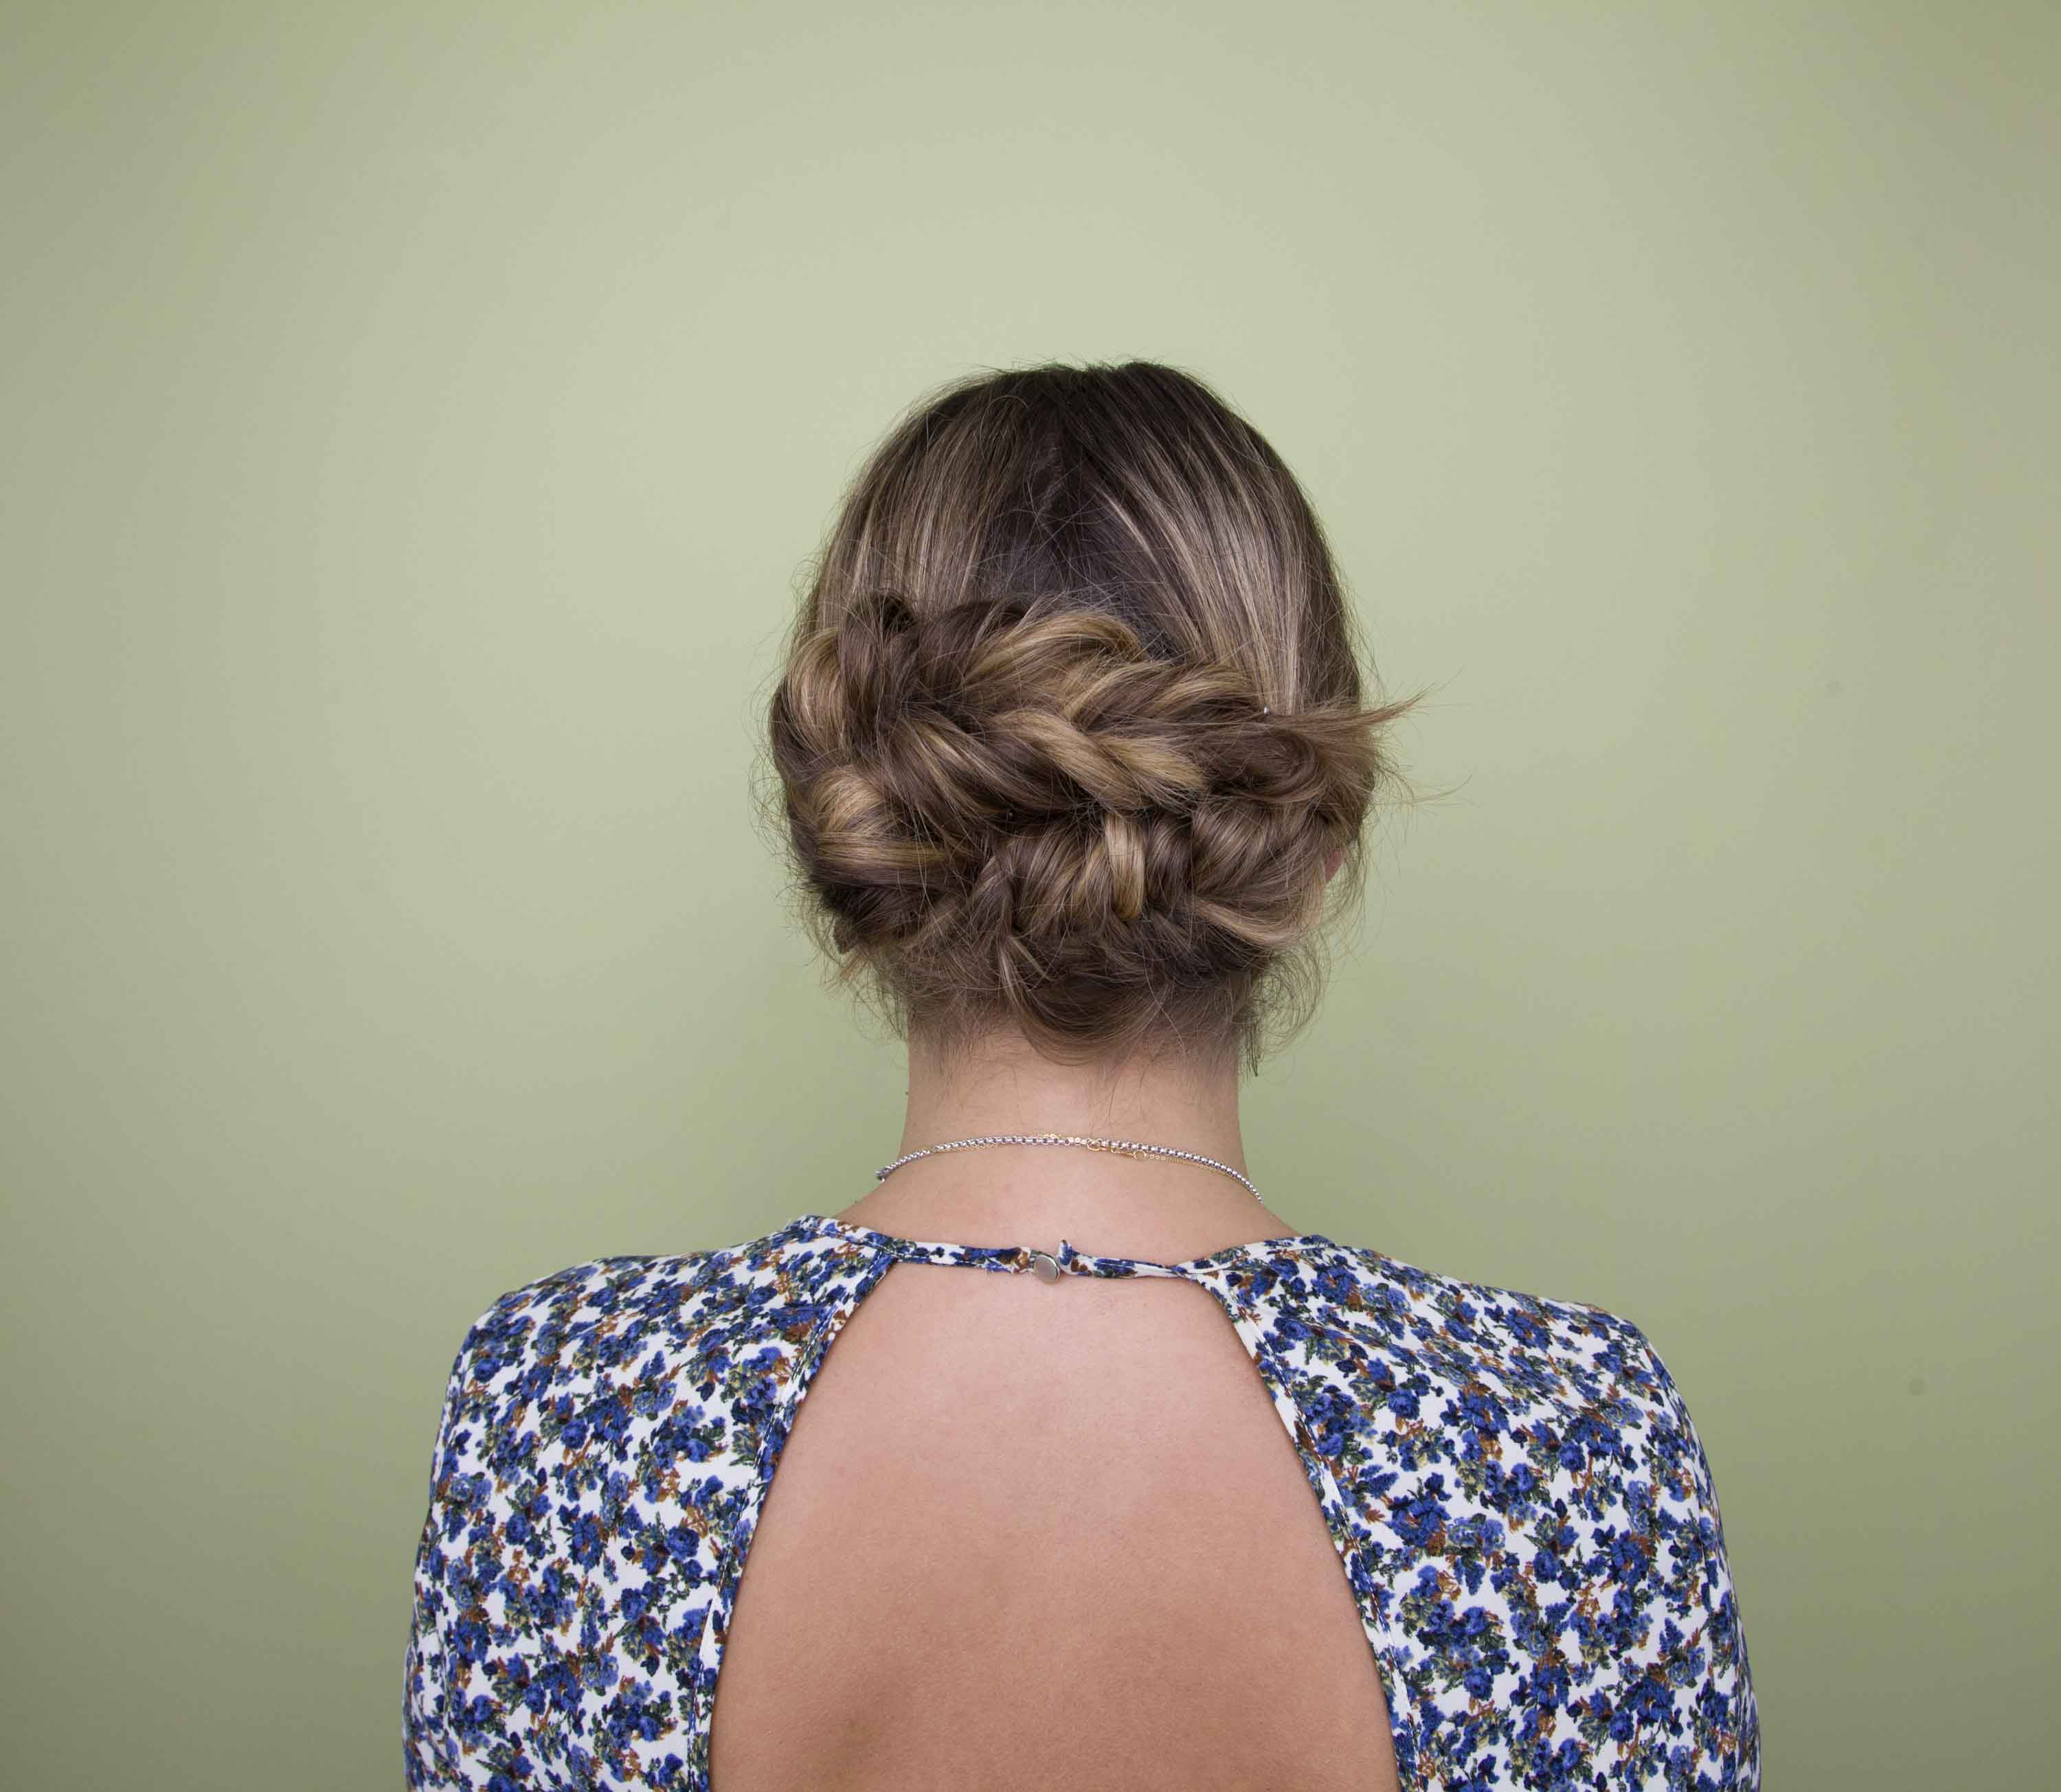 braid styles: low braided updo